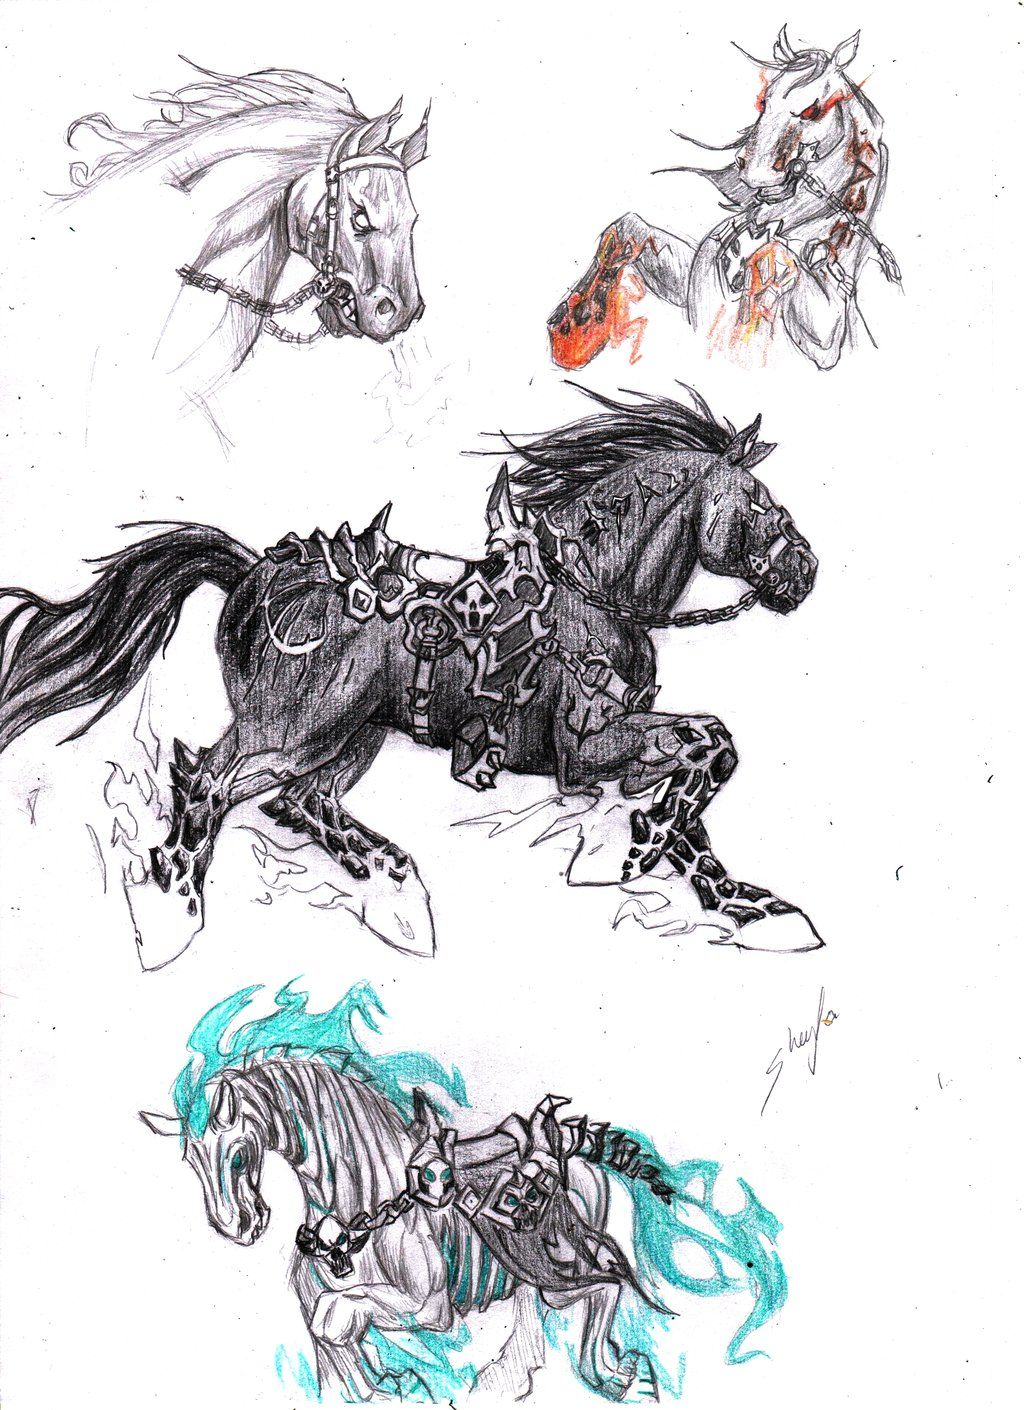 darksiders_horses_by_conceptartsx-d66nz36.jpg (1024×1410)